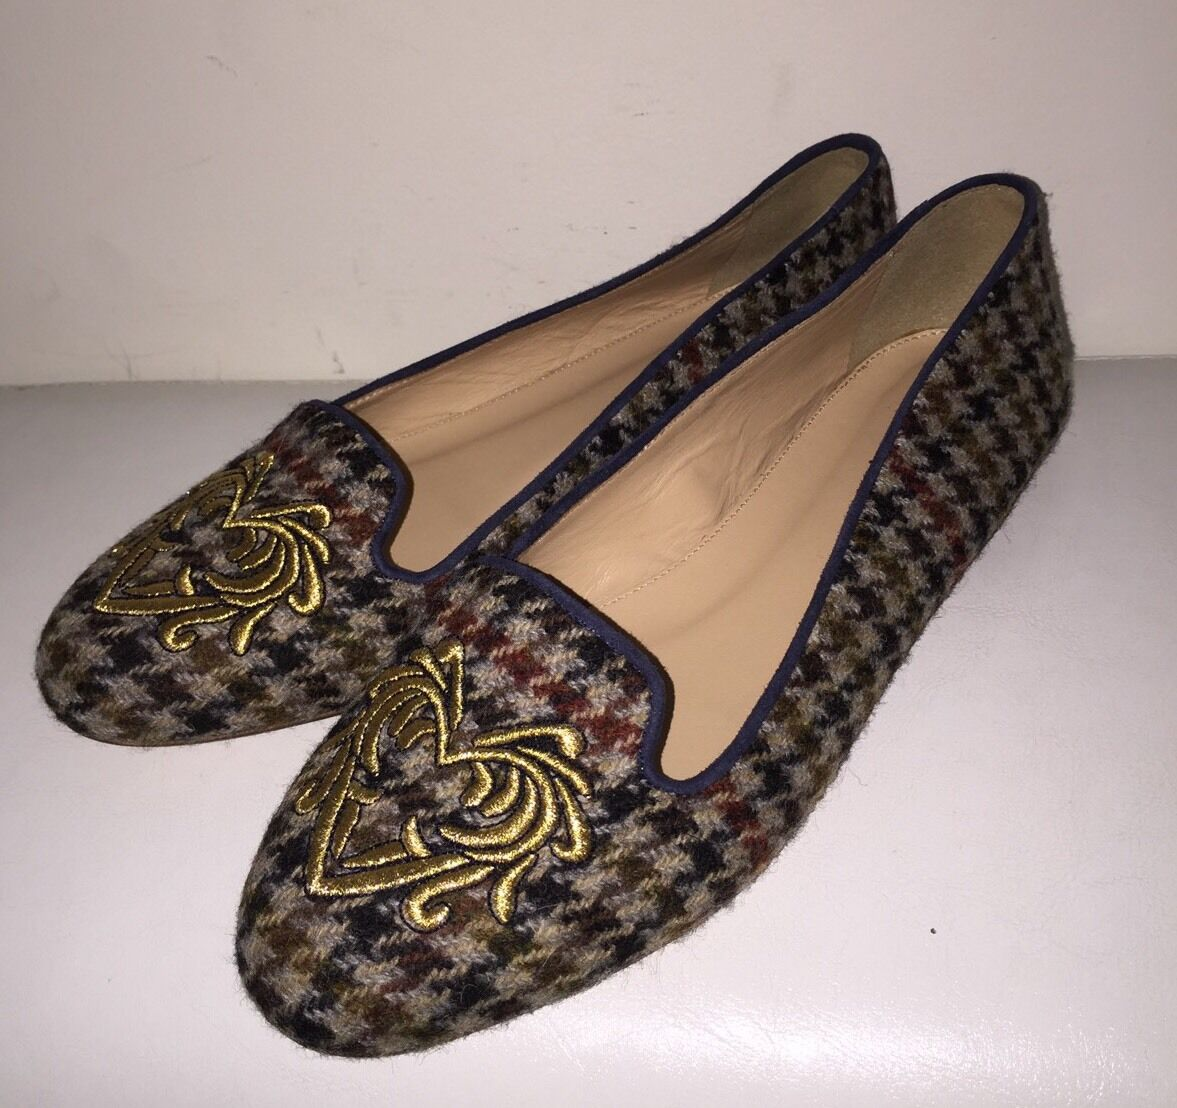 J Crew Crew J Sophie Embroidered Houndstooth Loafers Size 7.5 Style# A9755 New 21a1a2